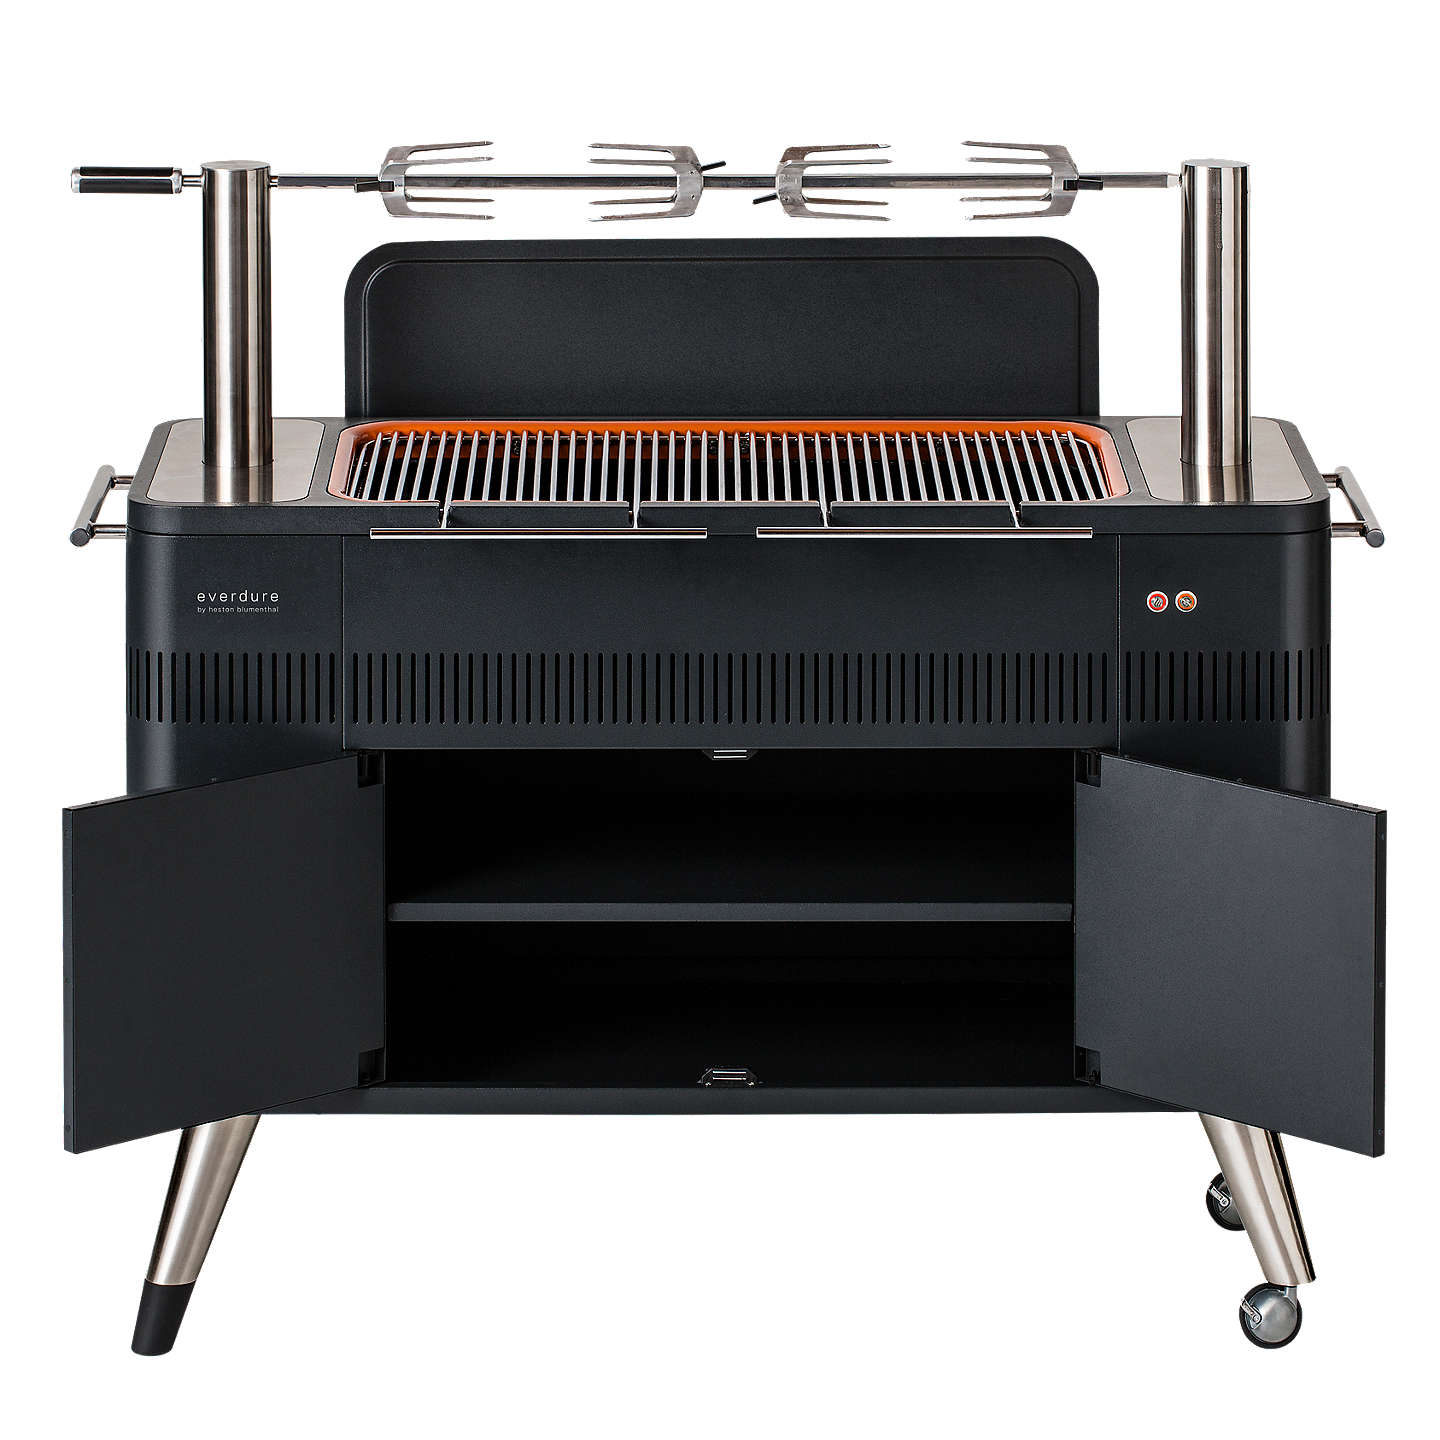 Buyeverdure by heston blumenthal HUB Electric Ignition Charcoal BBQ, Graphite Online at johnlewis.com